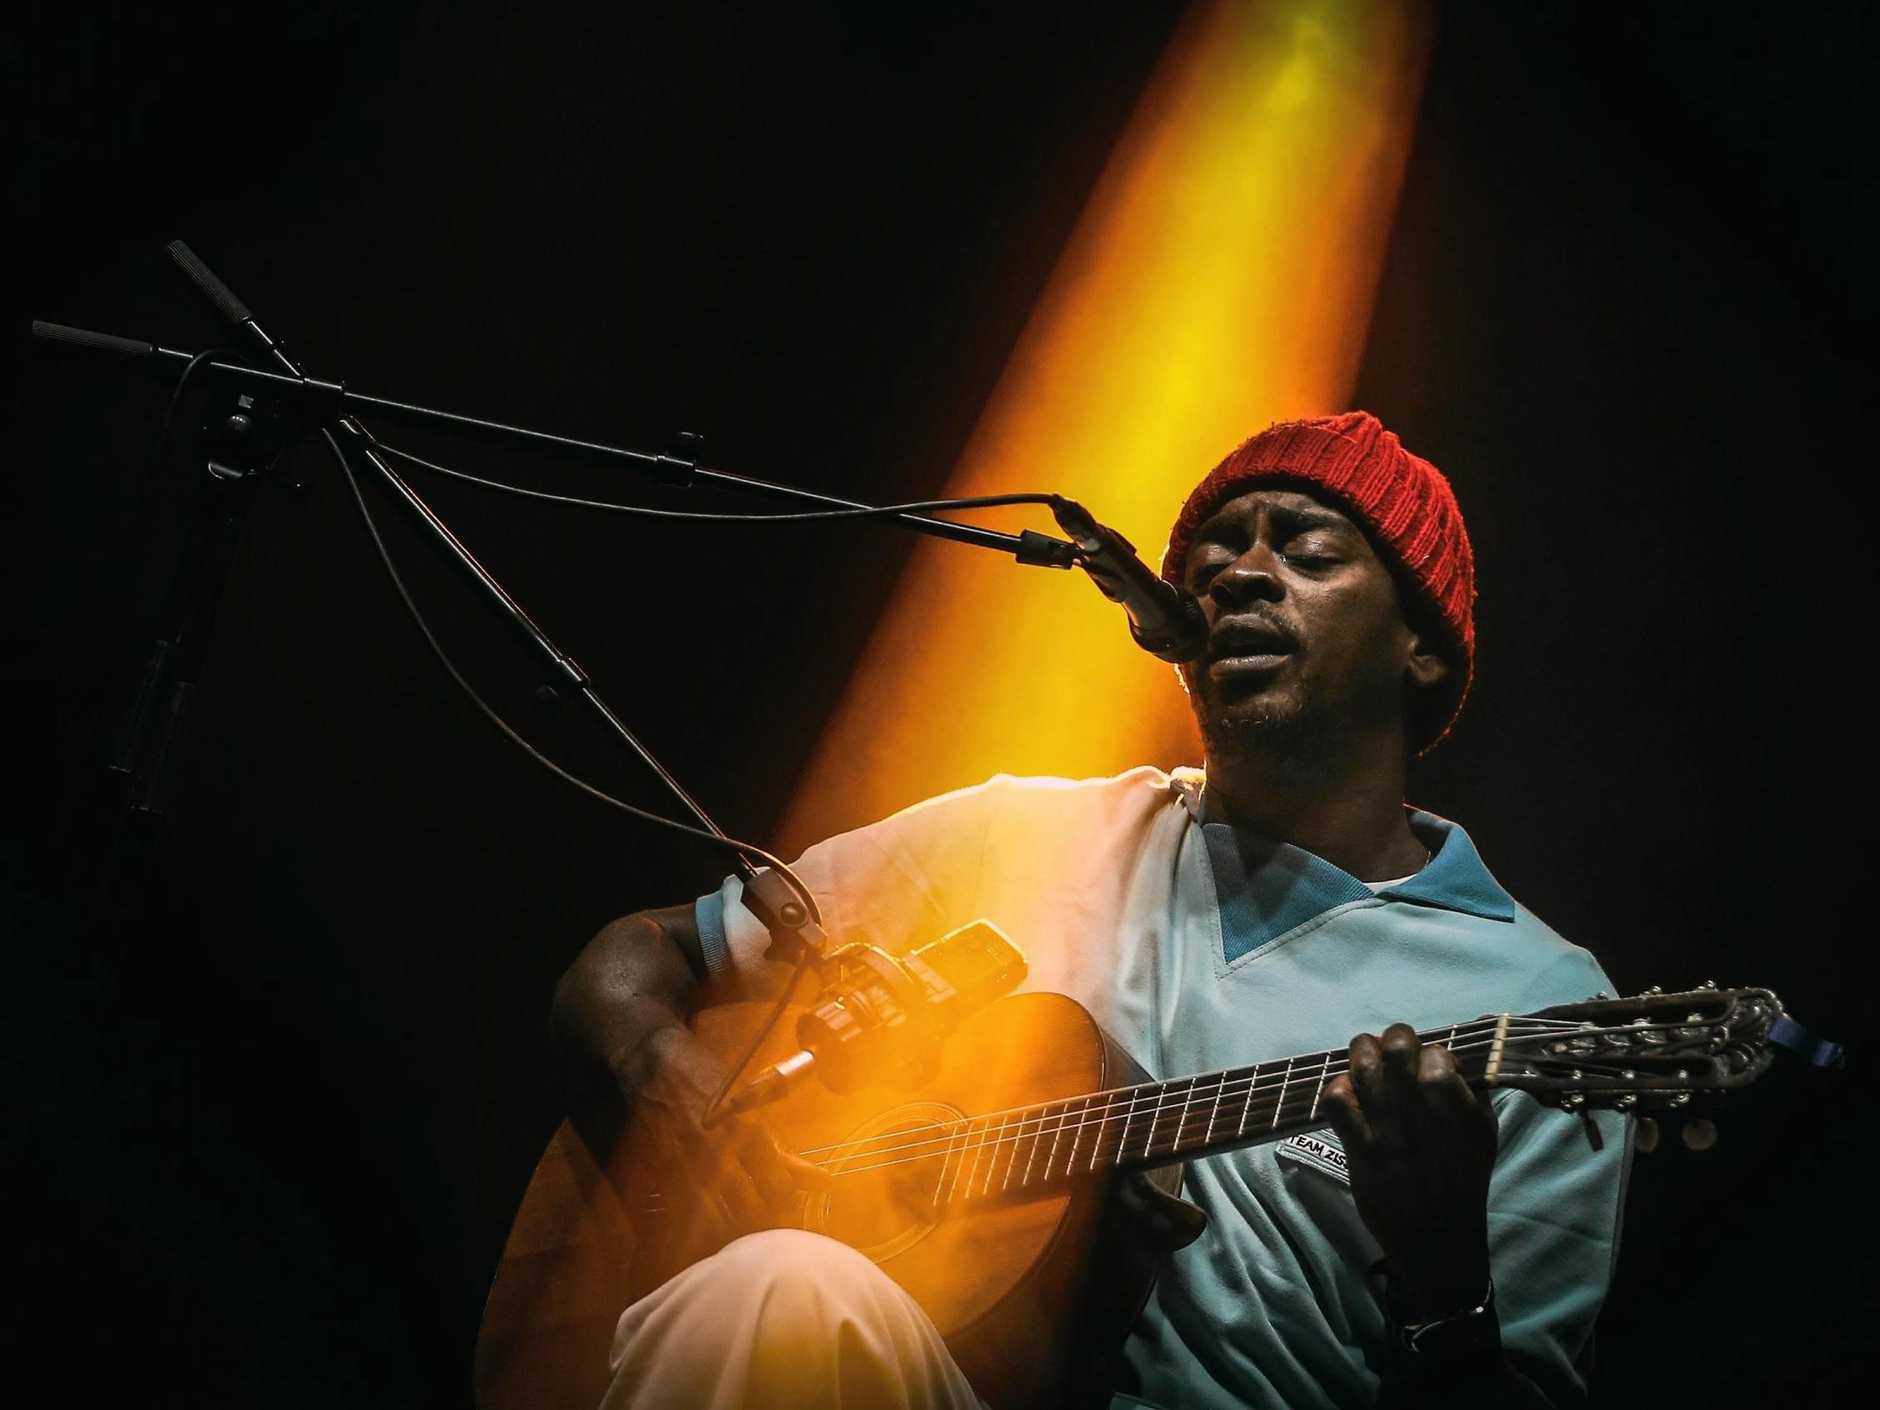 Brazilian musician Seu Jorge performs on the third and last day of the Super Bock Super Rock music festival in Lisbon, Portugal, 15 July 2017.  EPA/MRIO CRUZ